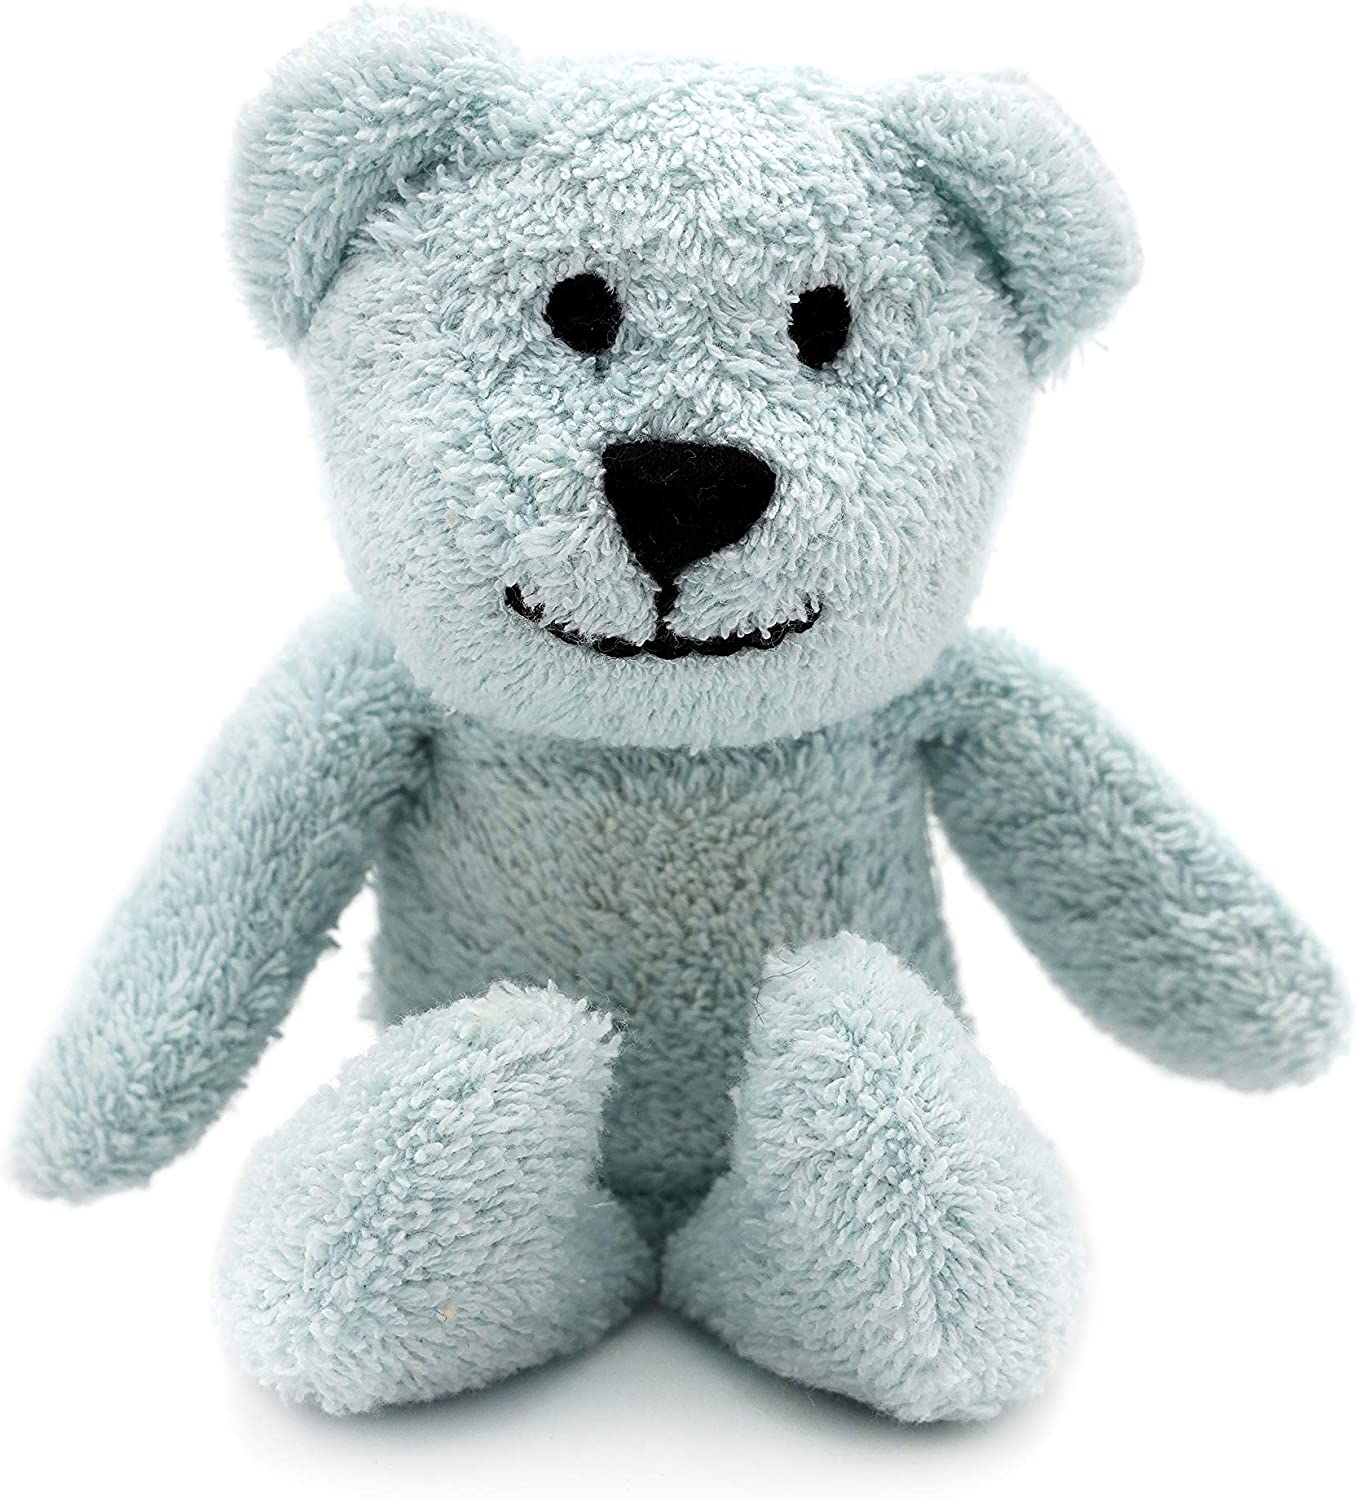 Thermal-Aid Zoo — Mini Buckley The Blue Bear — Kids Hot and Cold Pain Relief Boo Boo Tool — Heating Pad Microwavable Stuffed Animal and Cooling Pad — Easy Wash, Natural Sleep Aid: Health & Personal Care